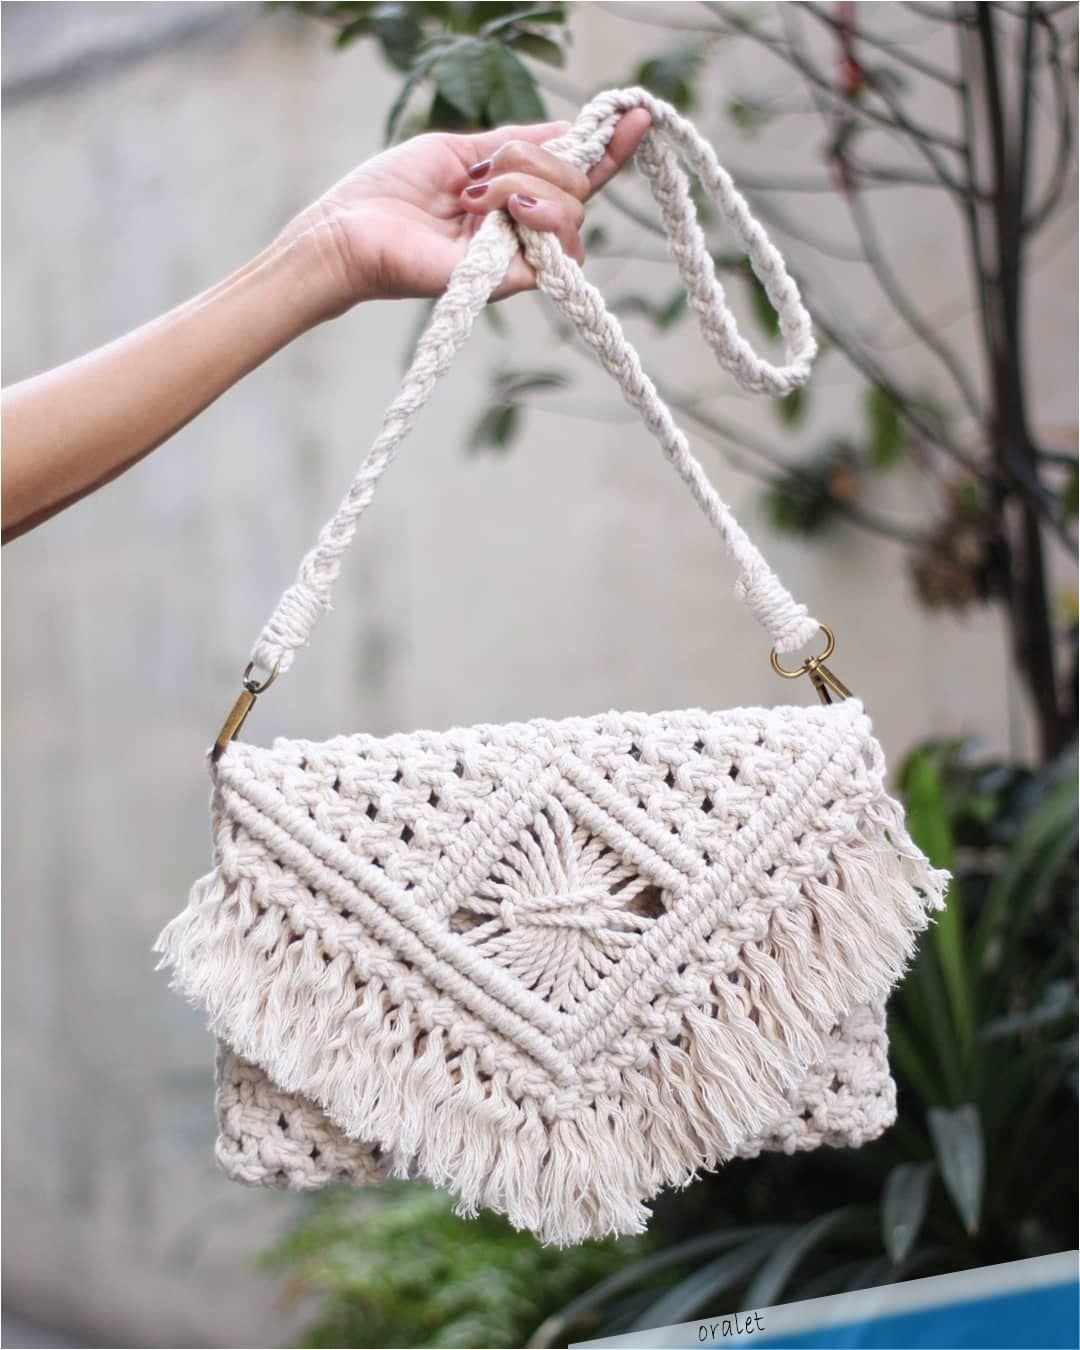 #Alexa #BAG #dreaming #featured #feel #heat #Instagram #Long #Sentiments #simple #Starting #Summer #vacations #youre Brak dostępnego opisu zdjęcia.